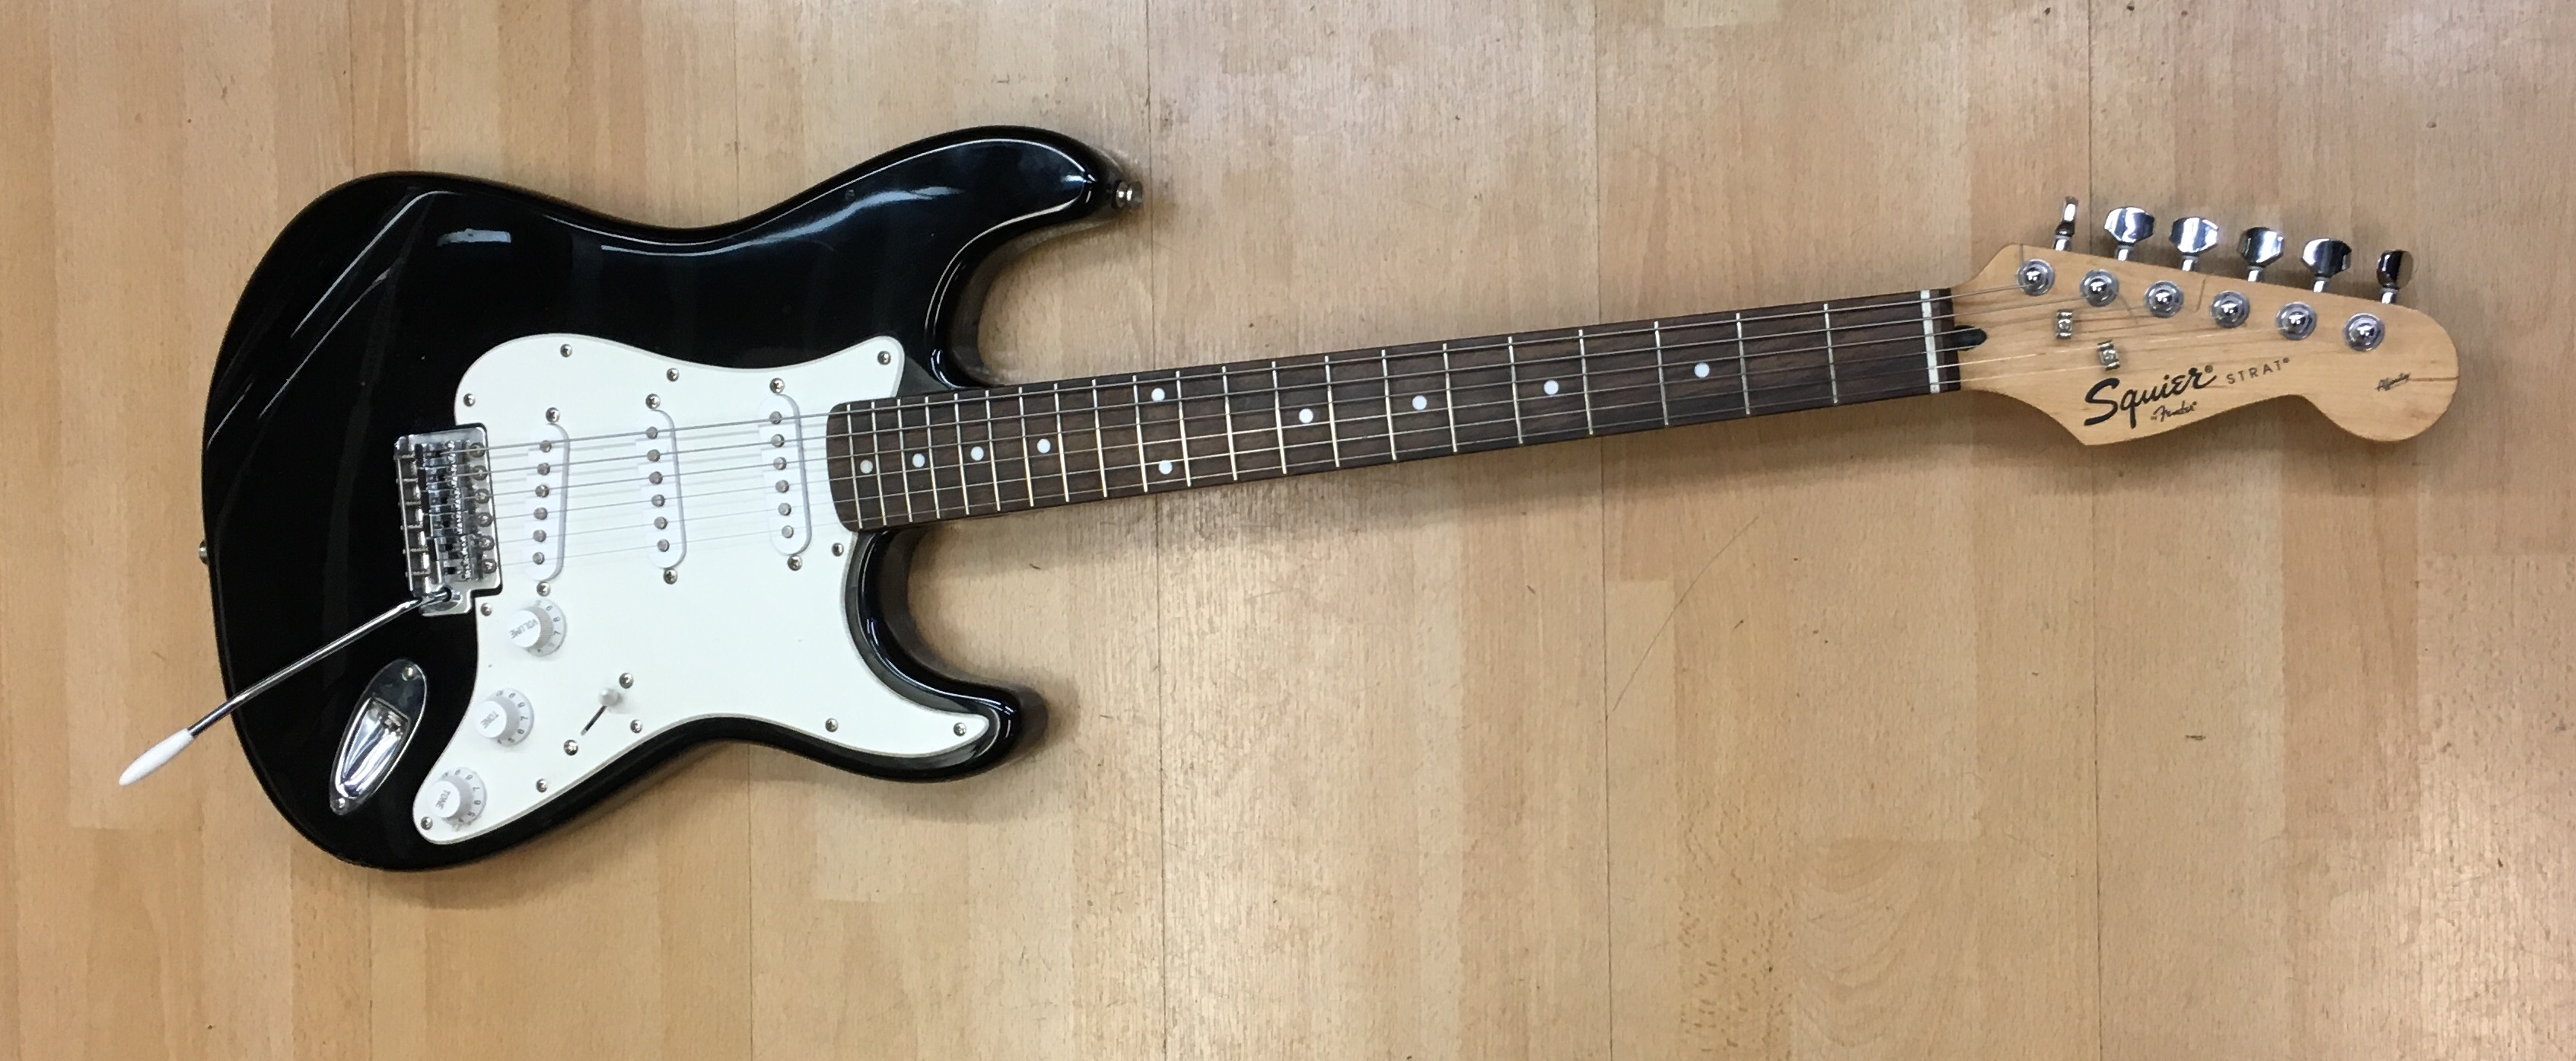 Picture of Squier Stratocaster